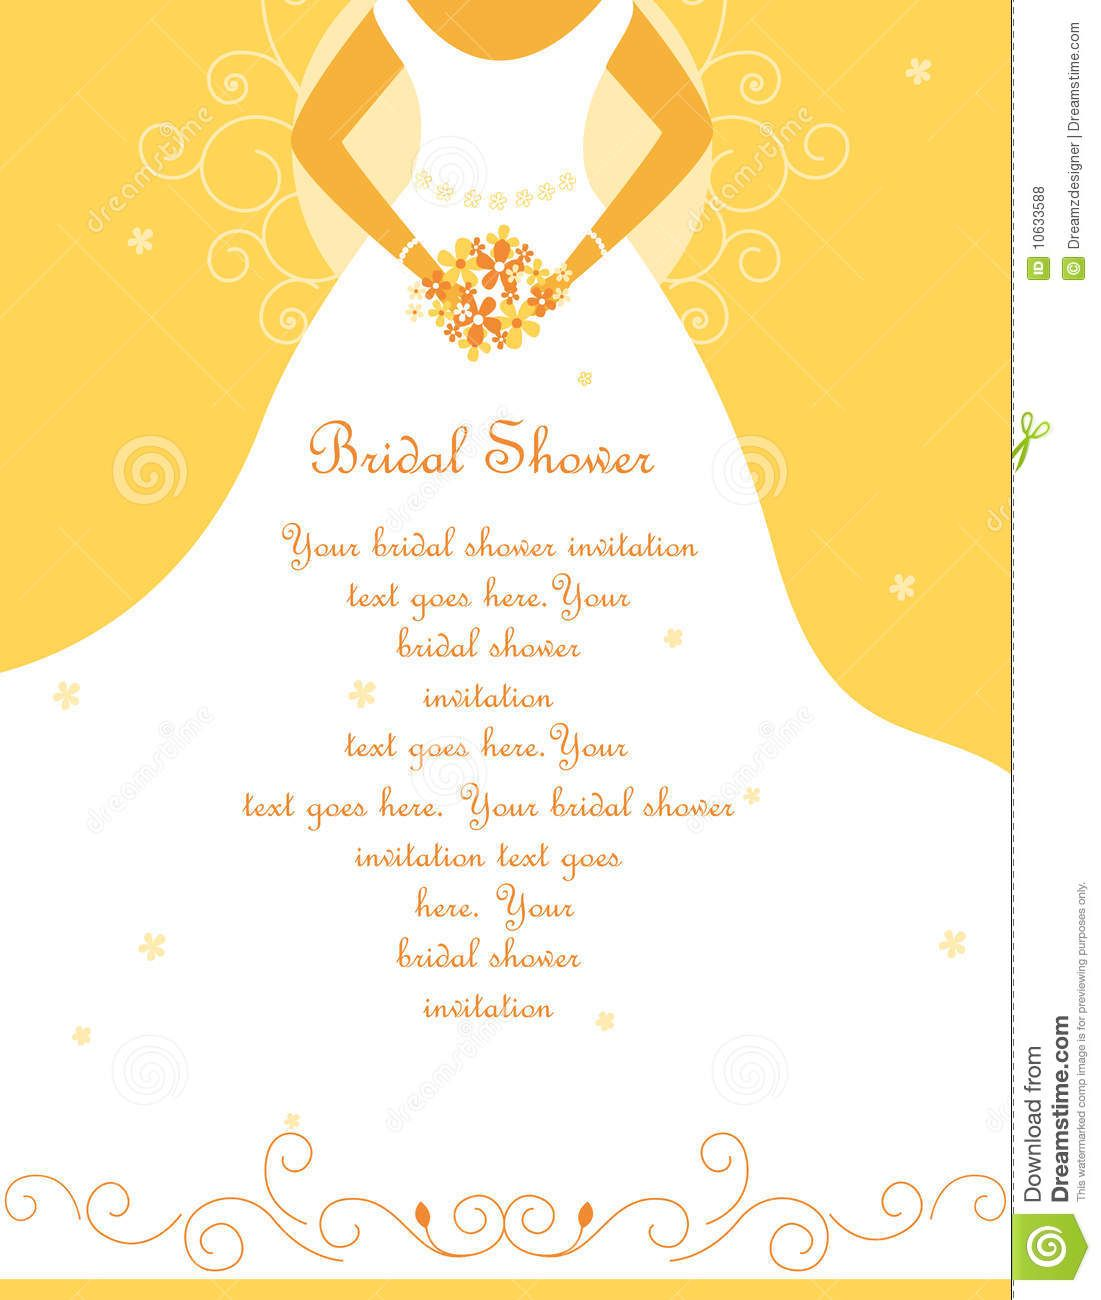 Pin by ~ Once Upon a Wedding ~ on Bridal Shower | Weddings ...